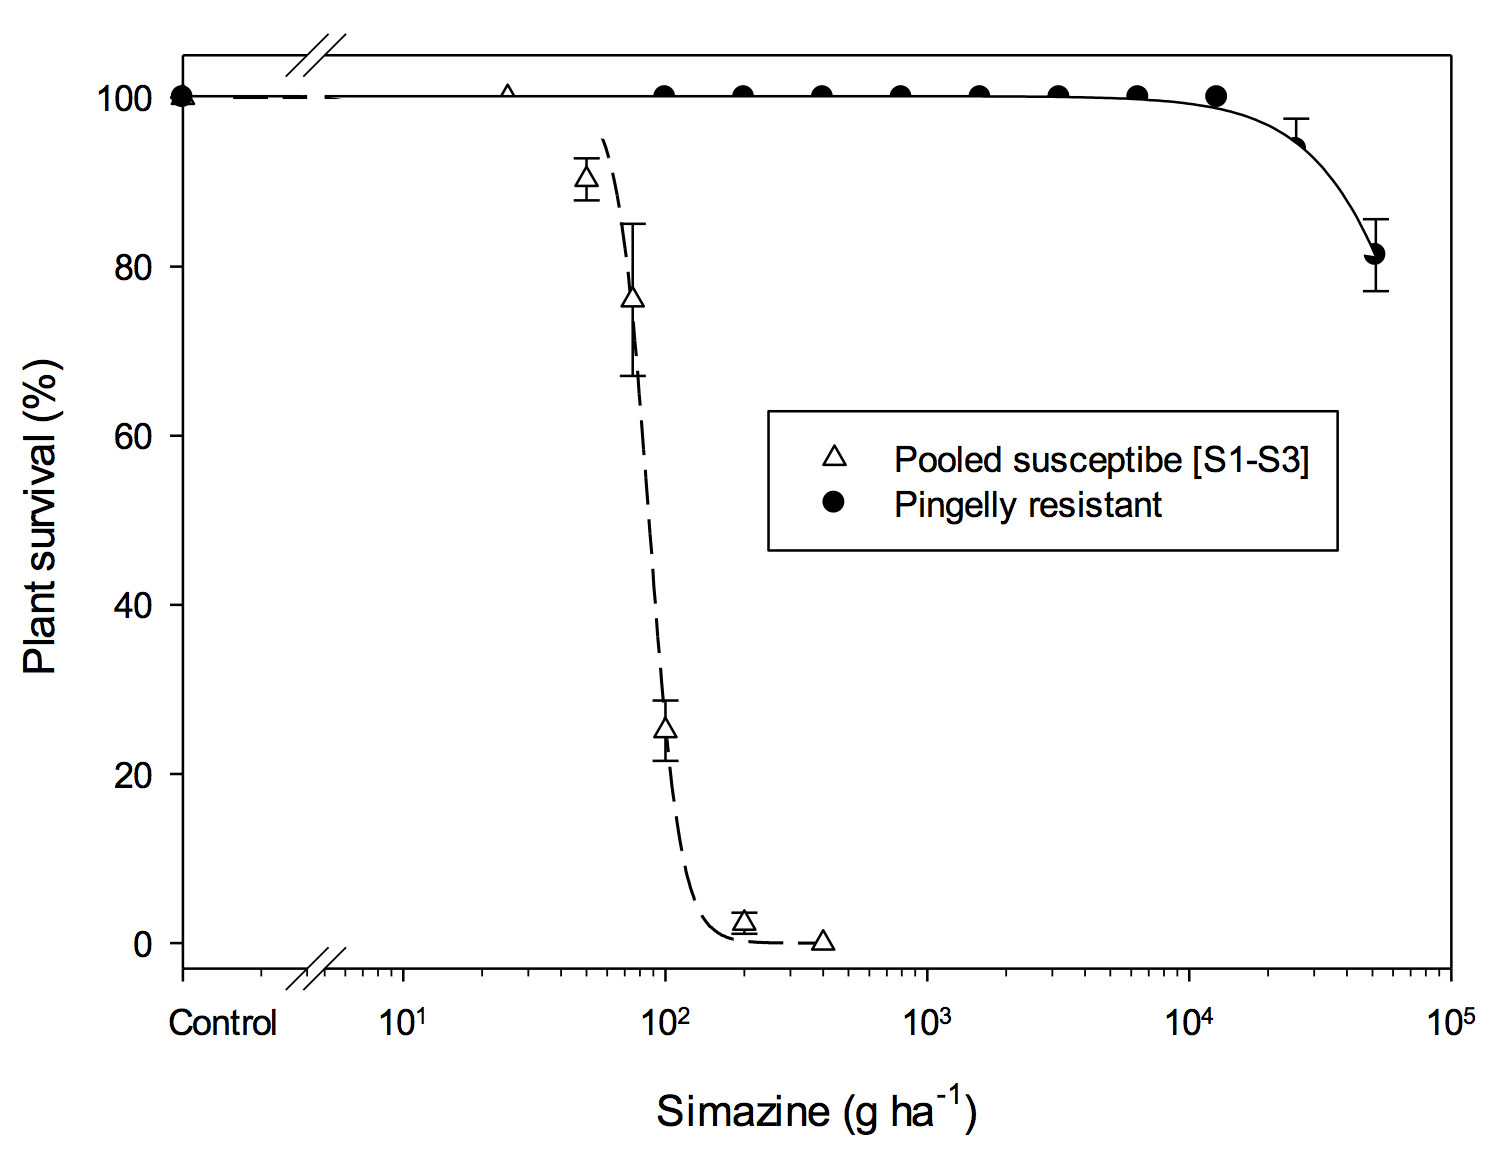 Figure 1. Survival dose-response curves for the pooled susceptible silvergrass populations S1, S2, S3 (…∆…) and the simazine resistant Pingelly population (_ _•_ _).